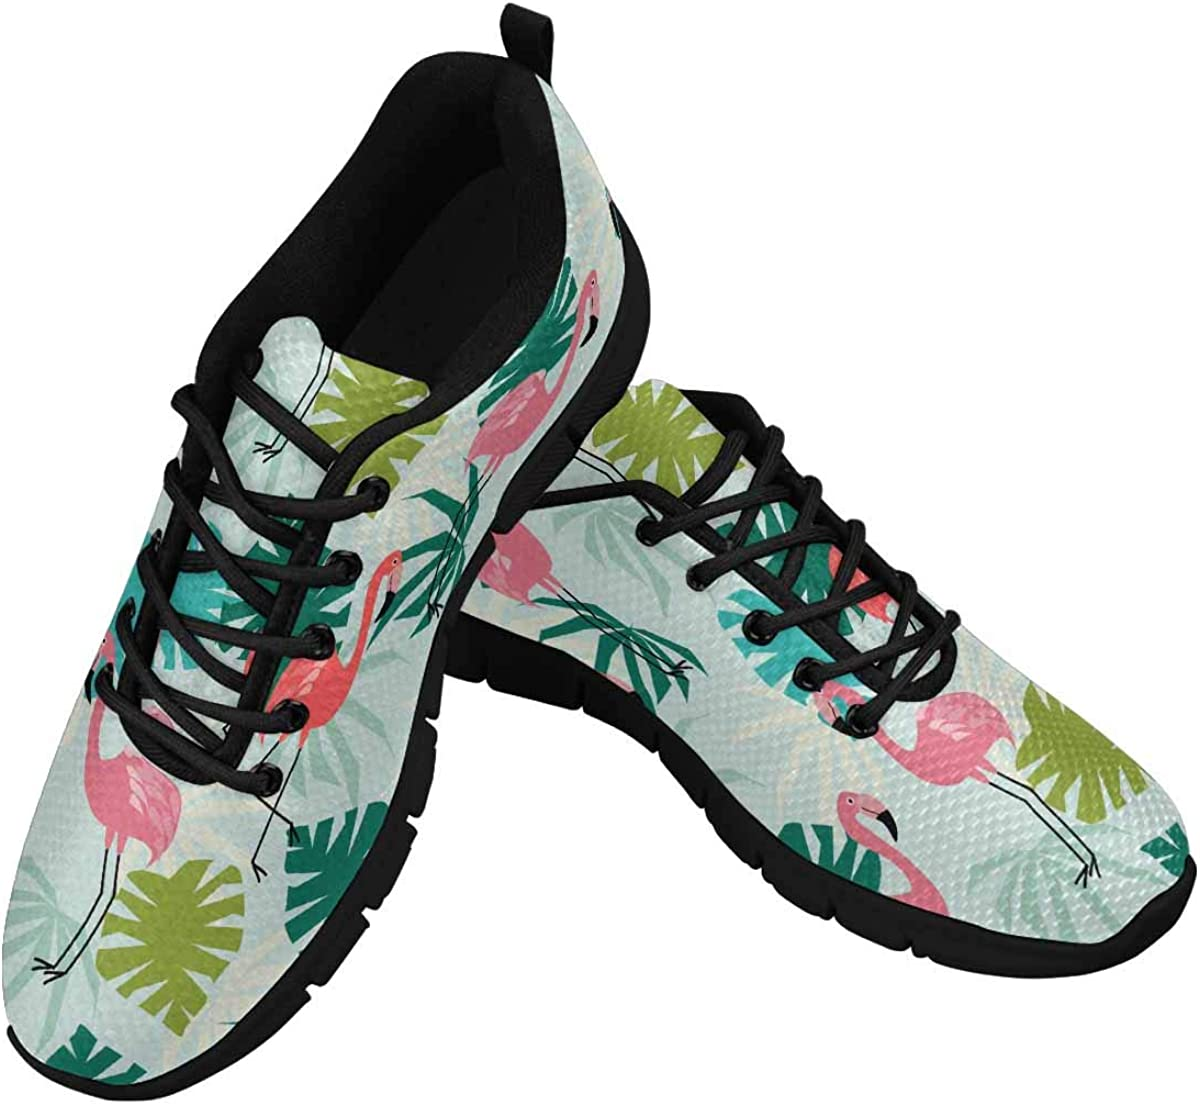 INTERESTPRINT Flamingo and Tropical Leaves Pattern Women's Lace Up Running Comfort Sports Sneakers